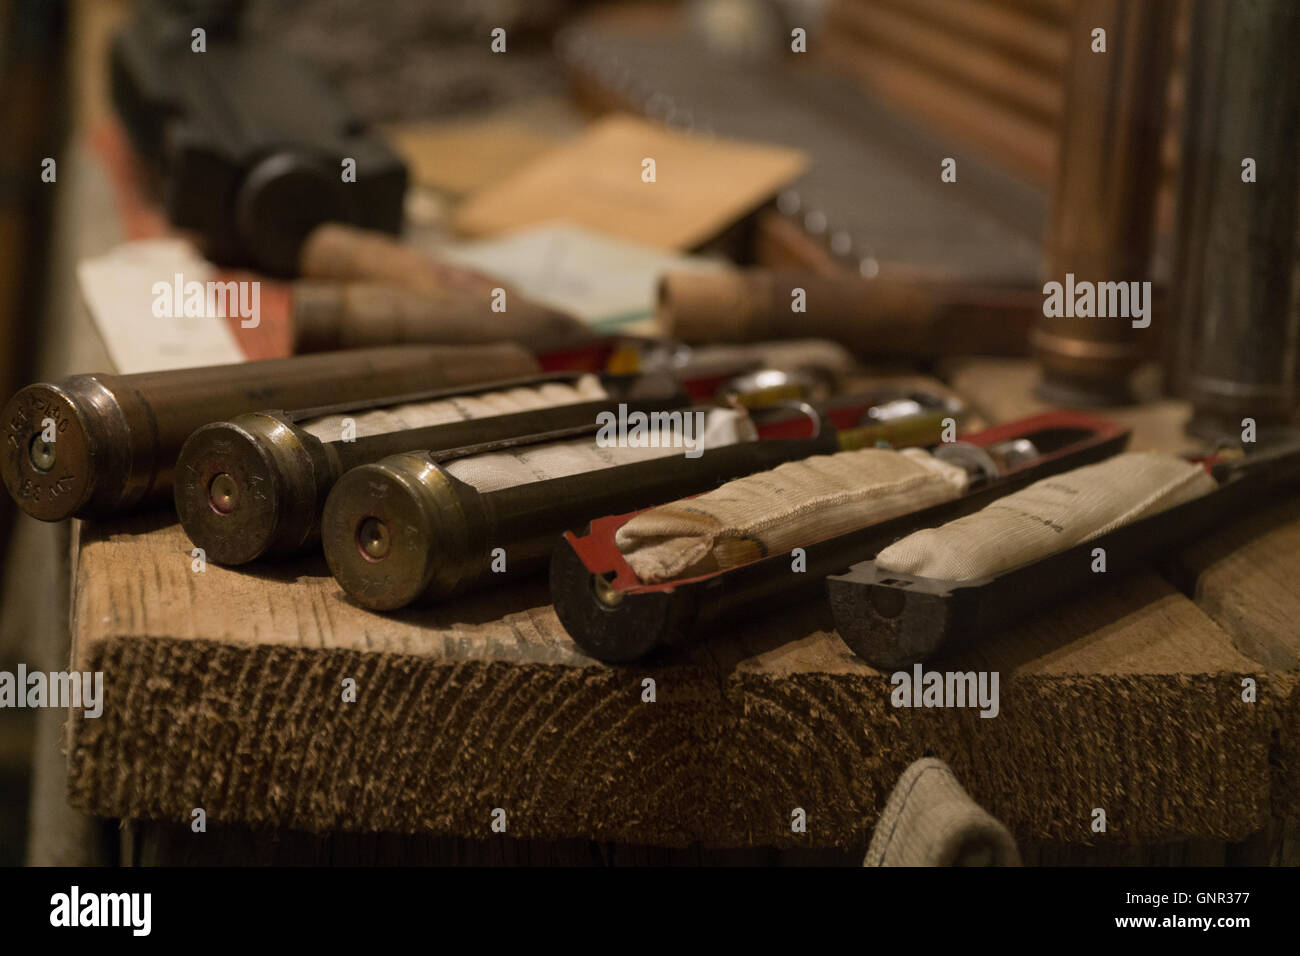 Bullet shell casings with interiors exposed at the Military Museum,Jersey,Channel Islands - Stock Image